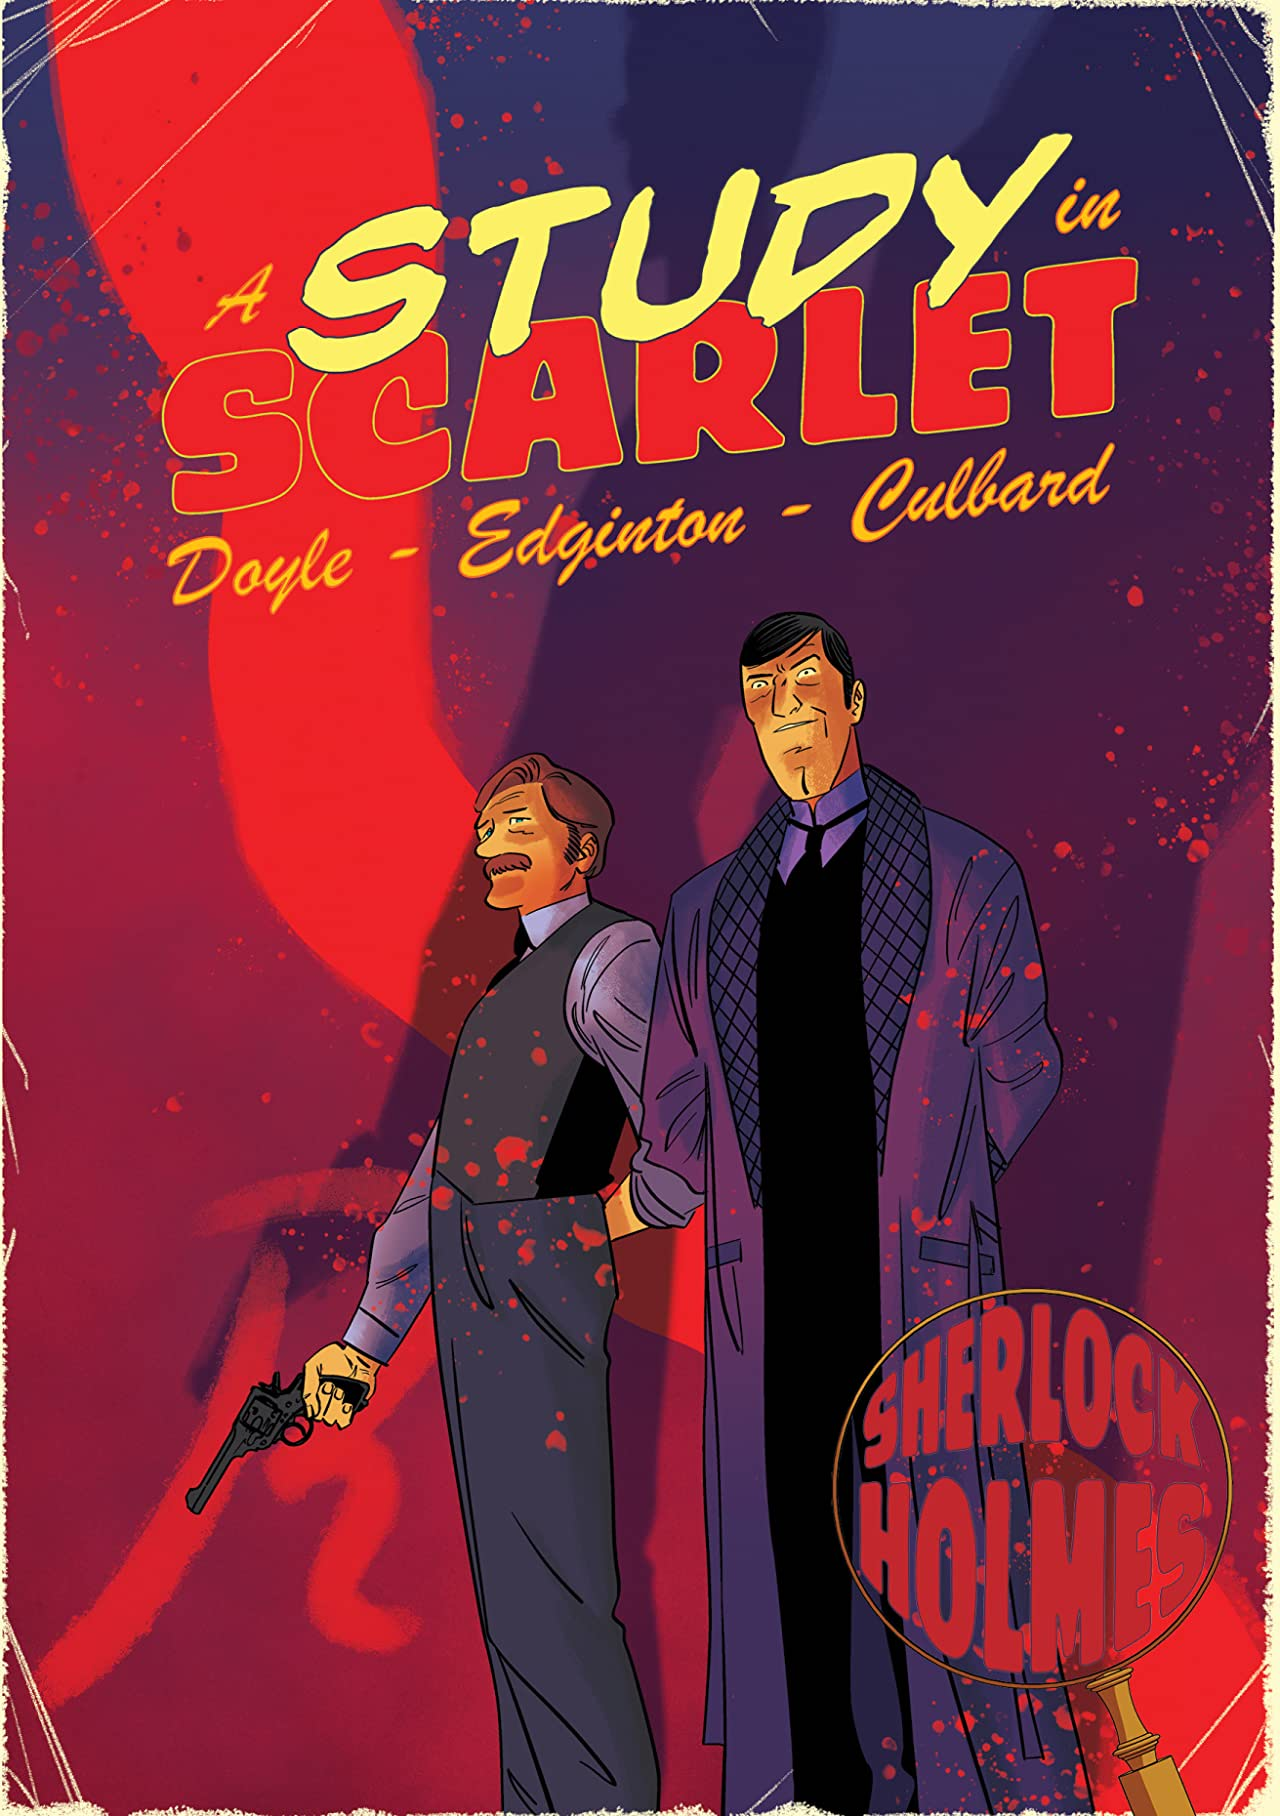 A Sherlock Holmes Graphic Novel Vol. 1: A Study in Scarlet